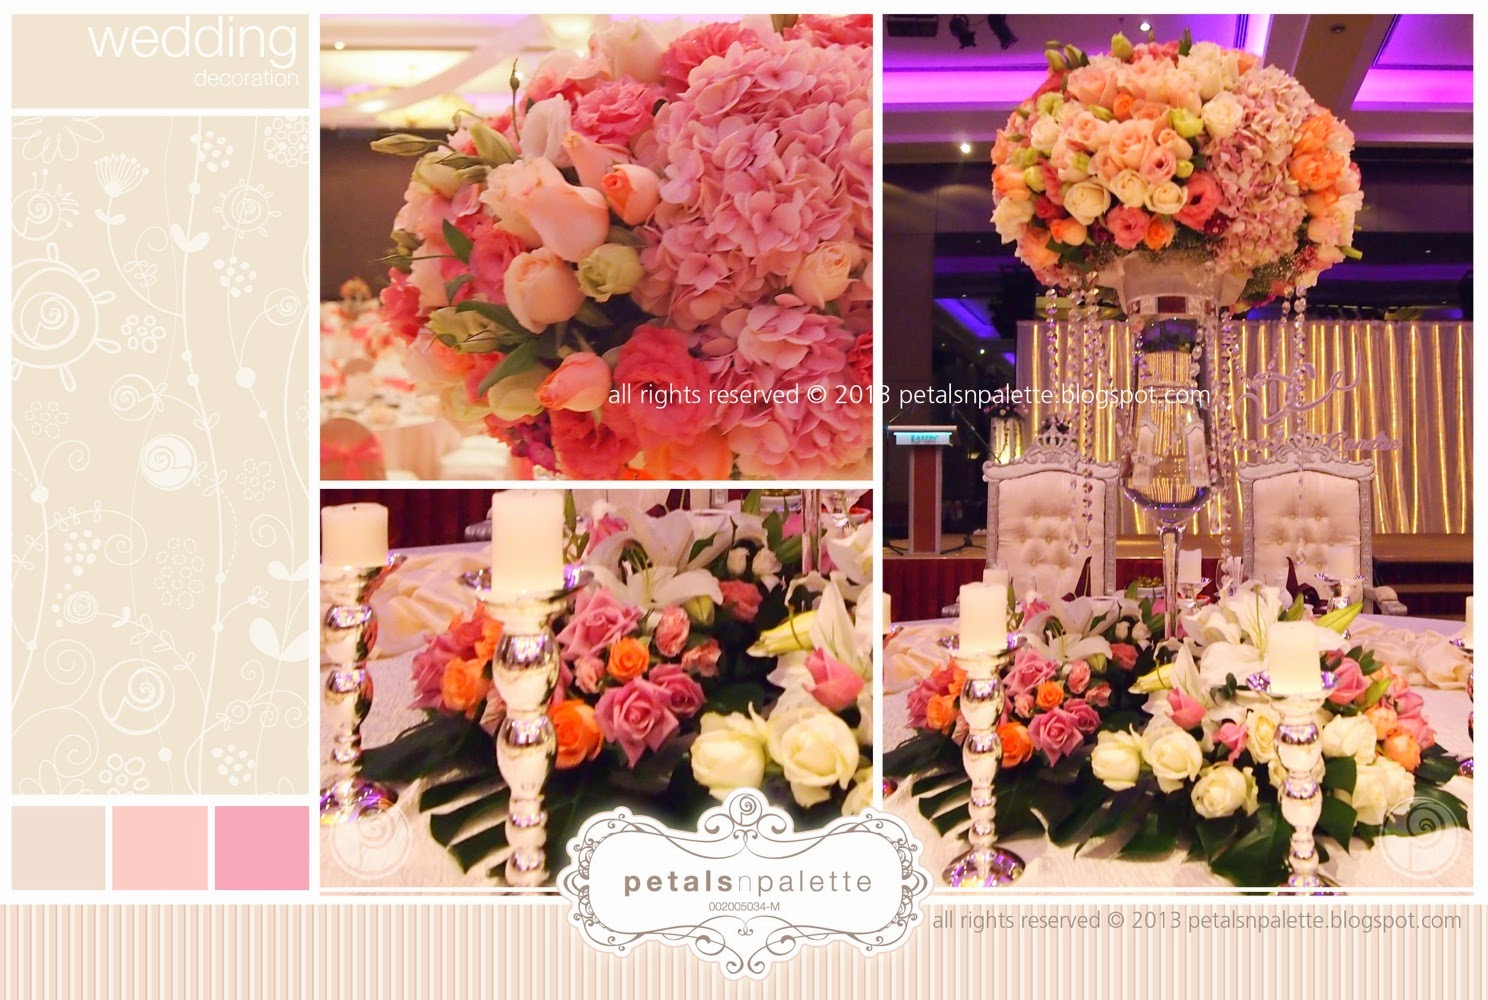 wedding decoration rental malaysia images wedding dress